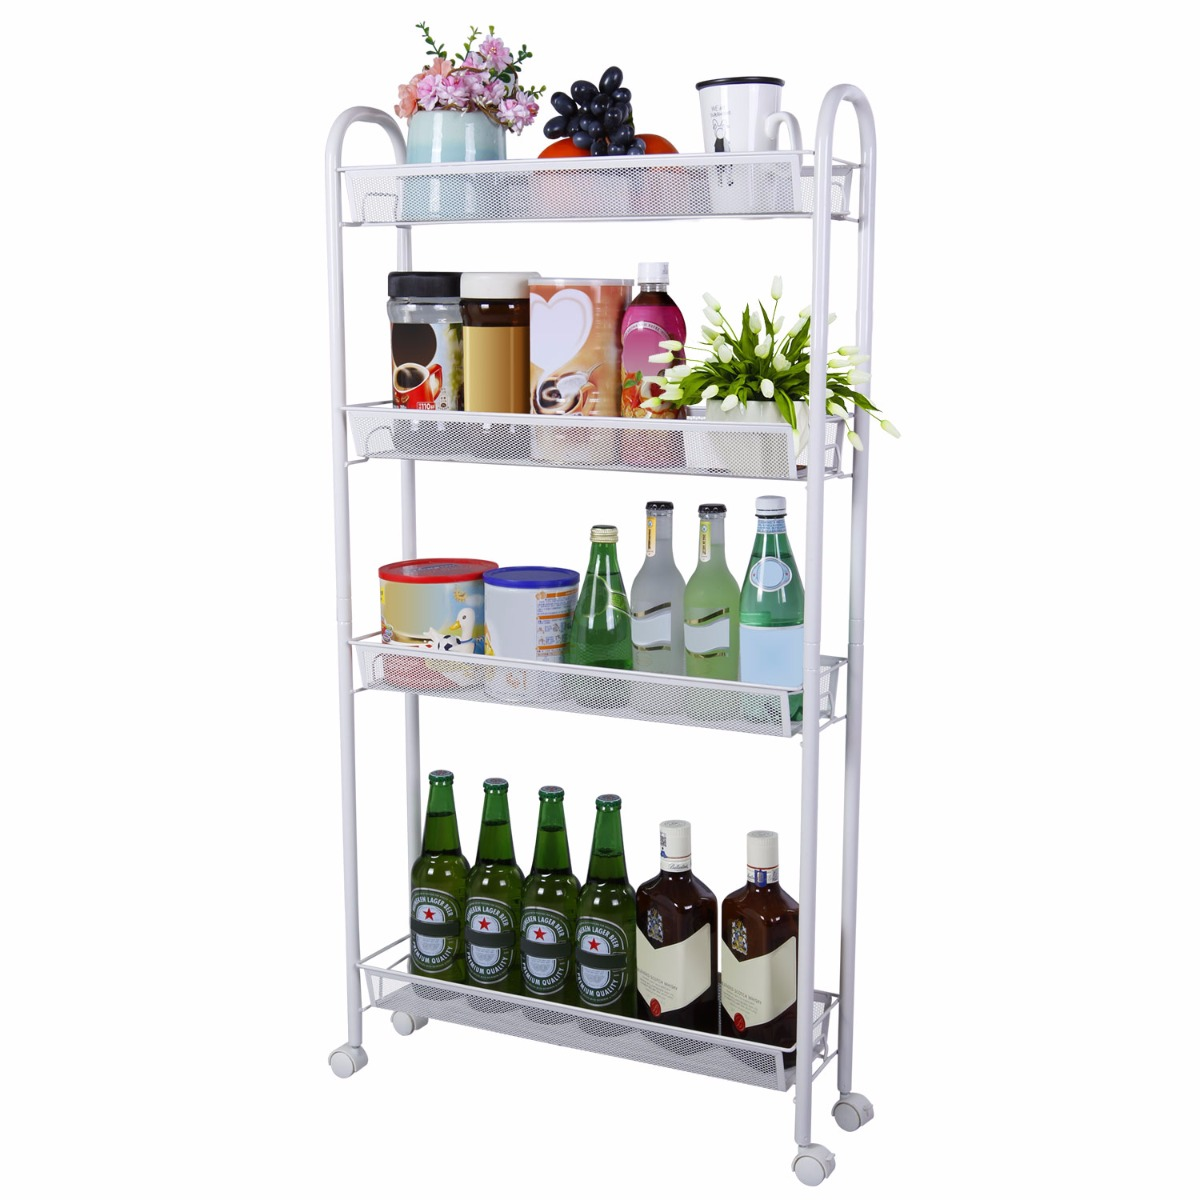 Charmant Lifewit 4 Tier Slim Gap Storage Rolling Cart With Omnidirectional Casters,  Slide Out